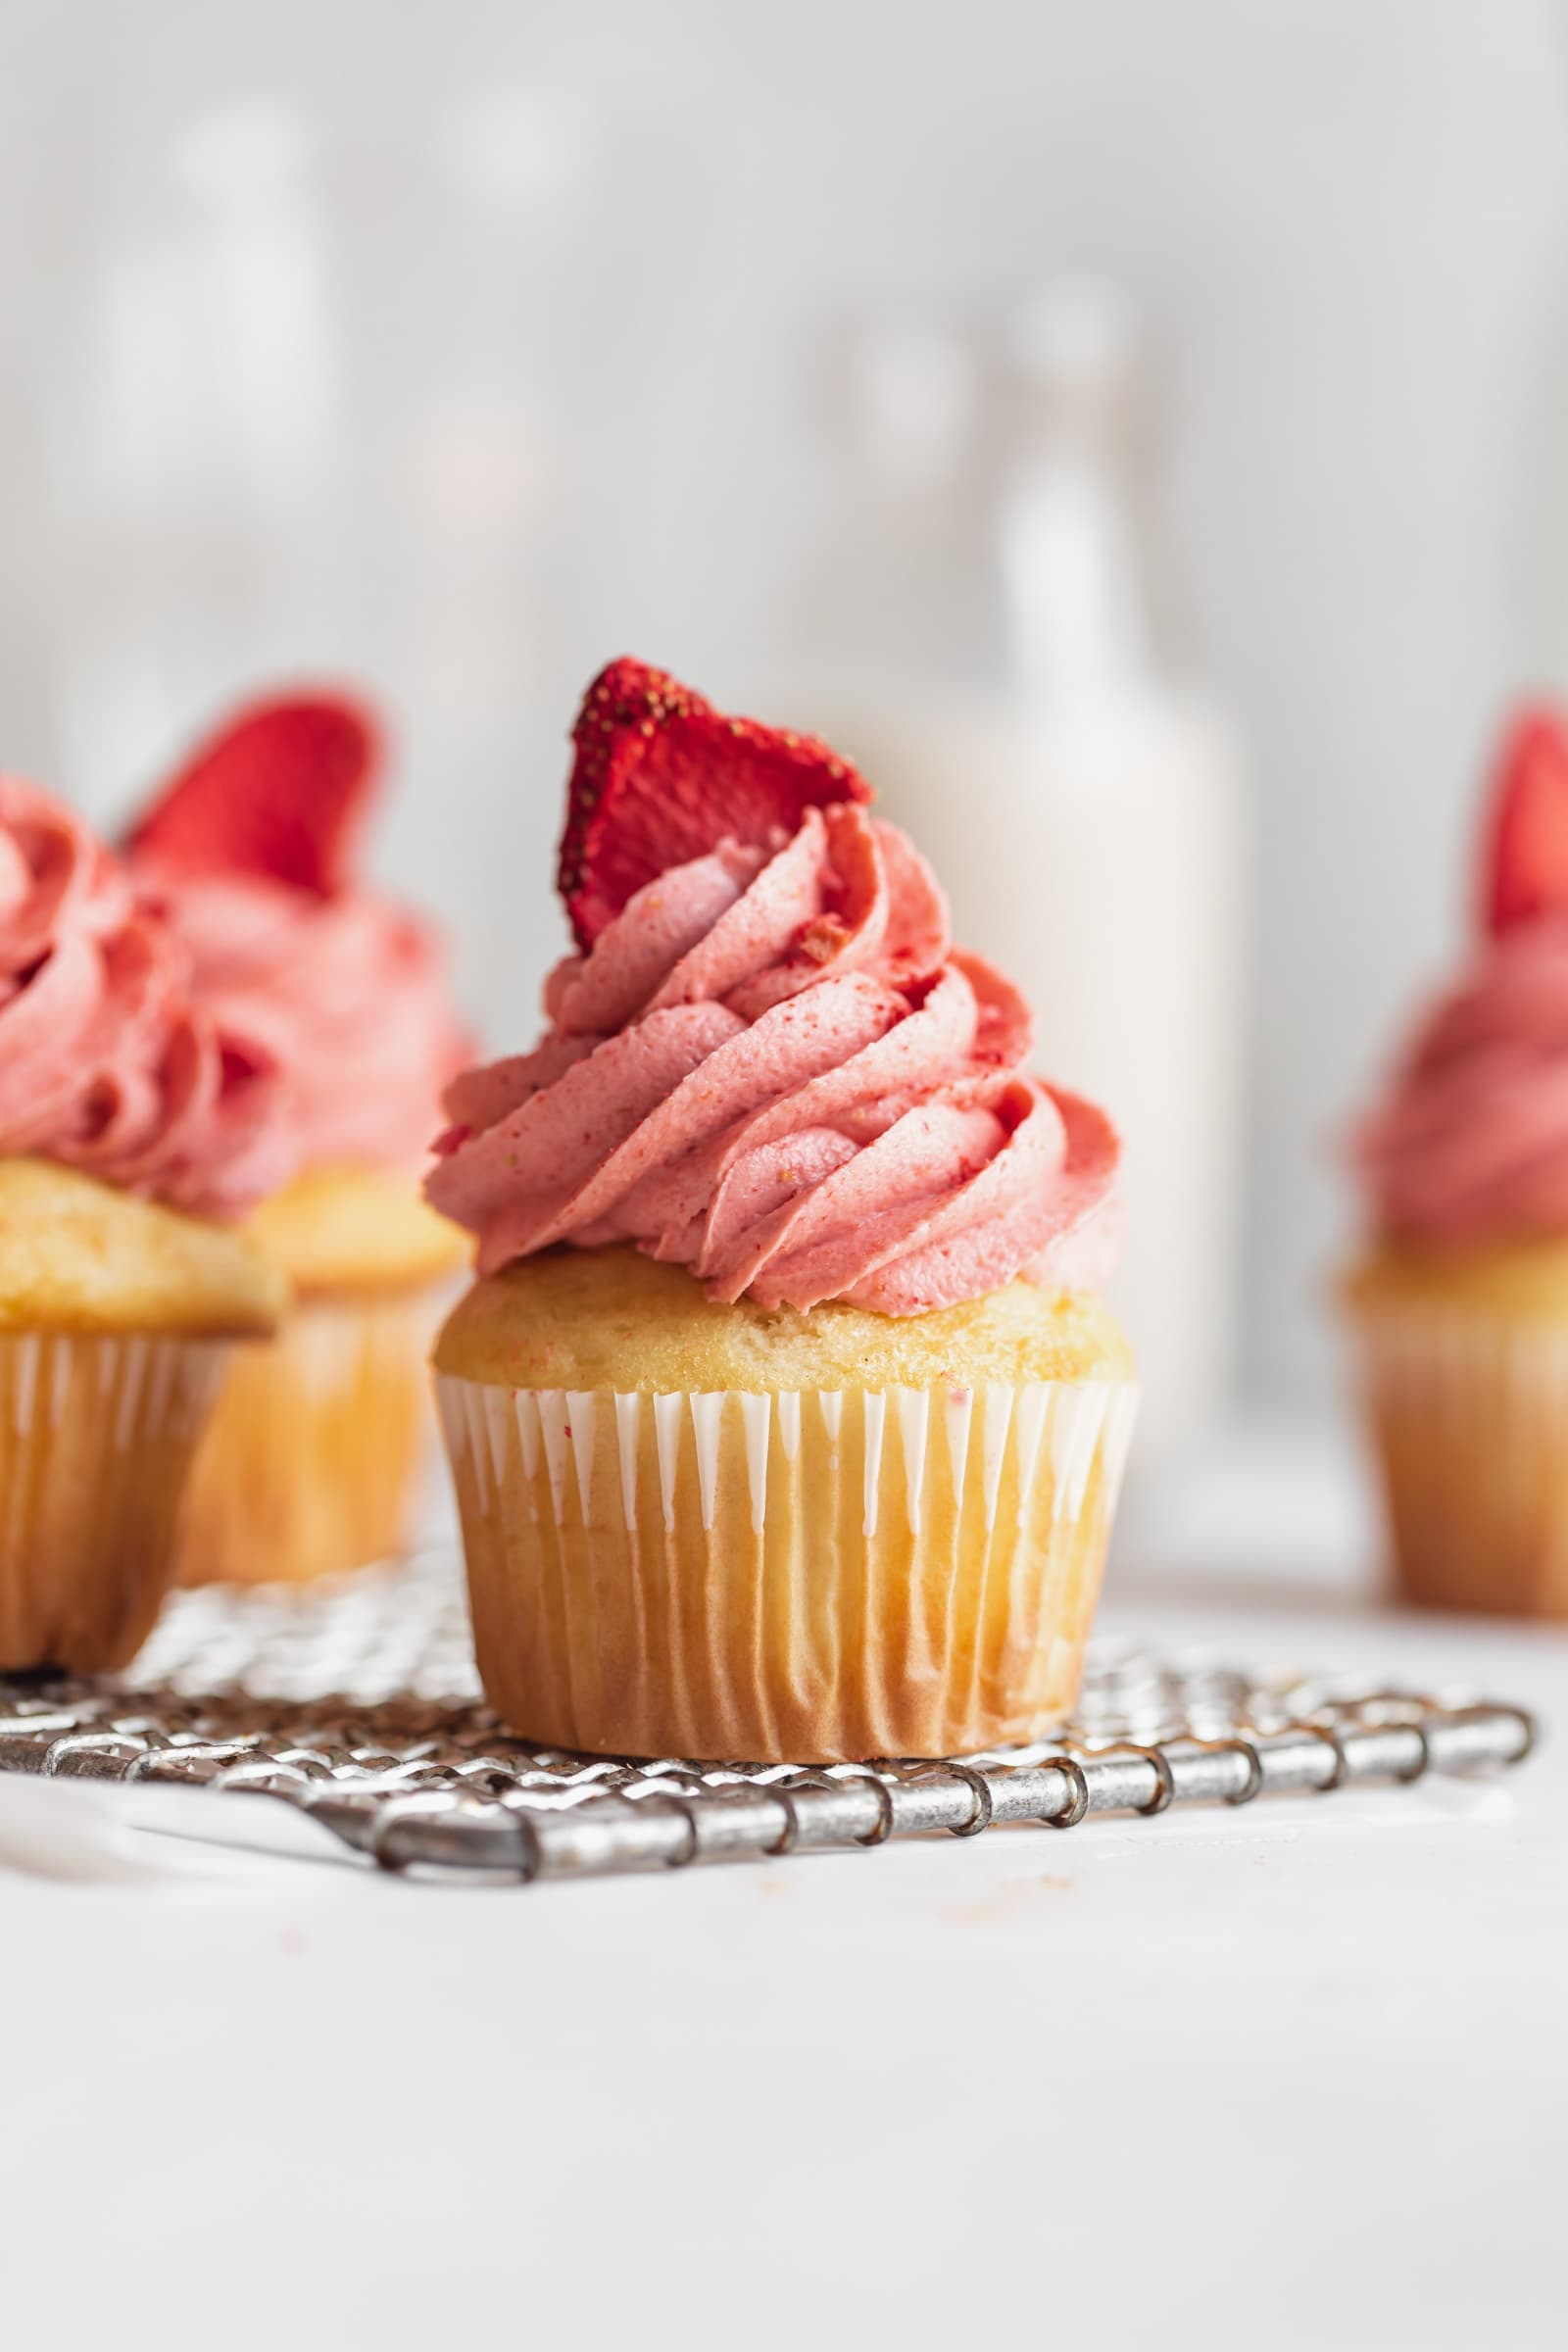 homemade strawberry frosting on a cupcake